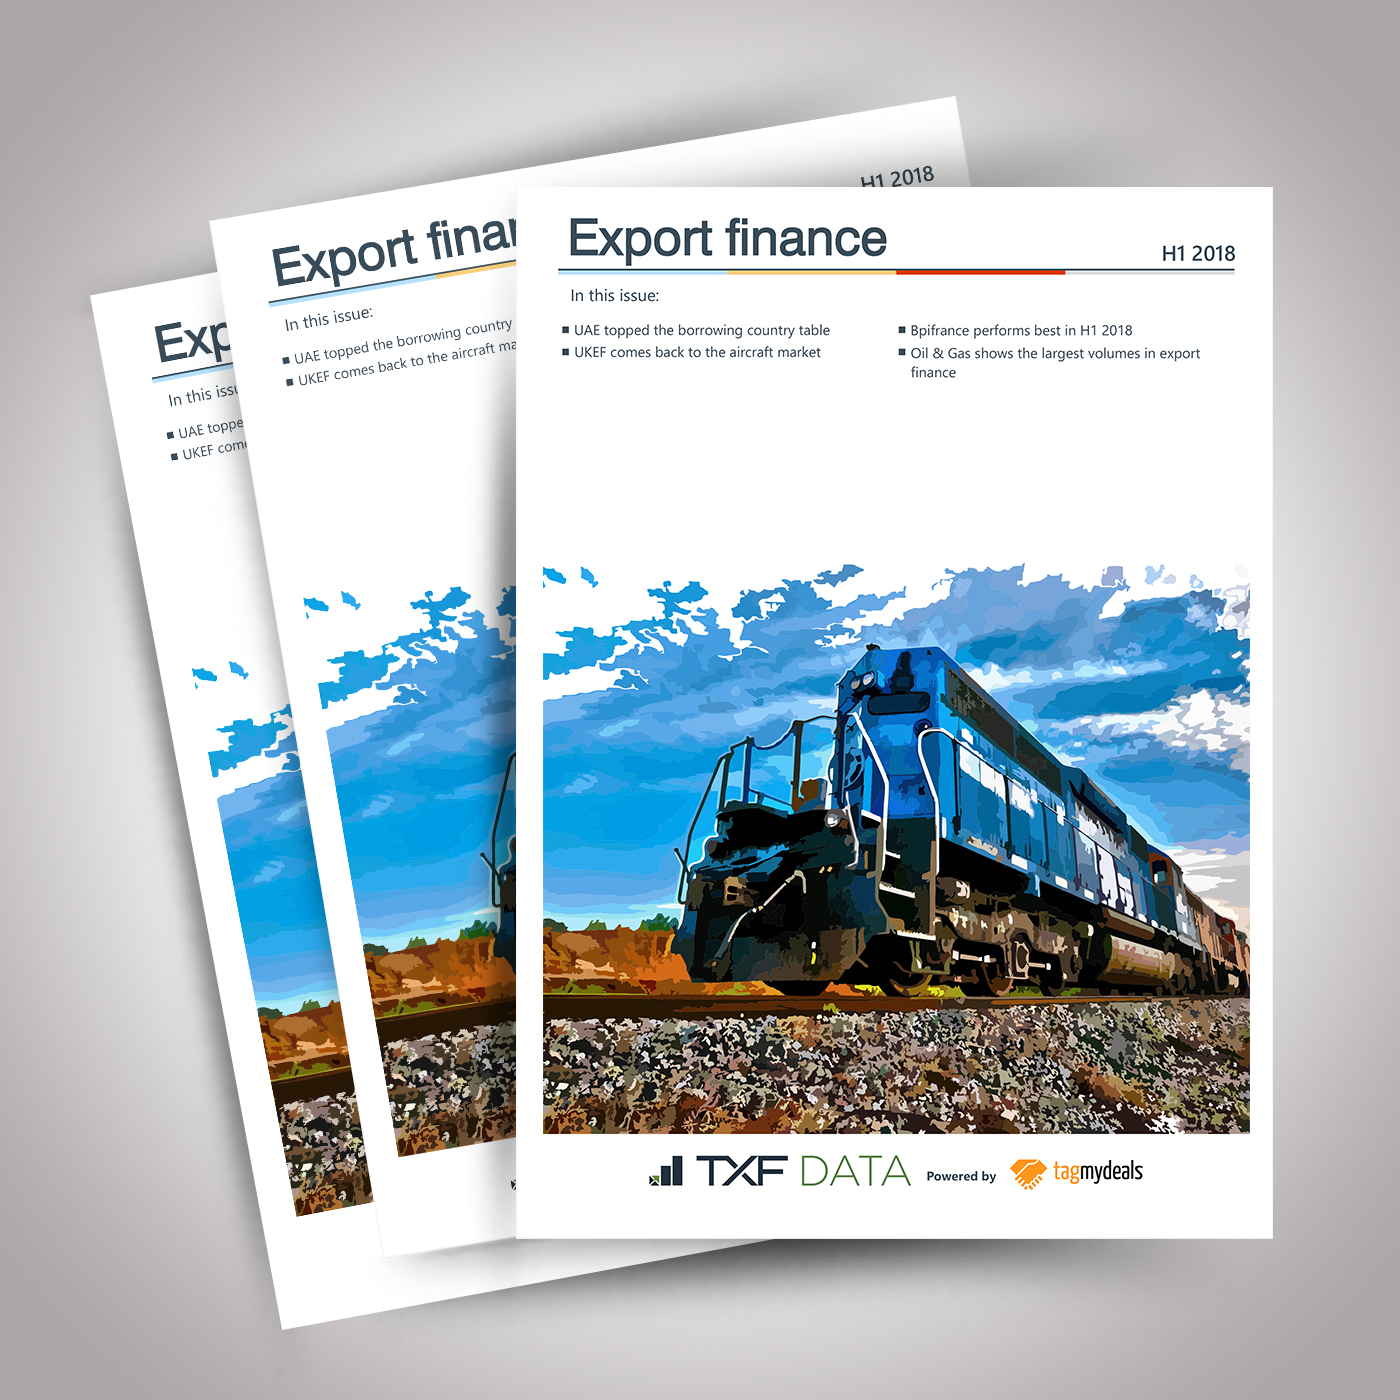 A review of the Export Finance Market in H1 2018